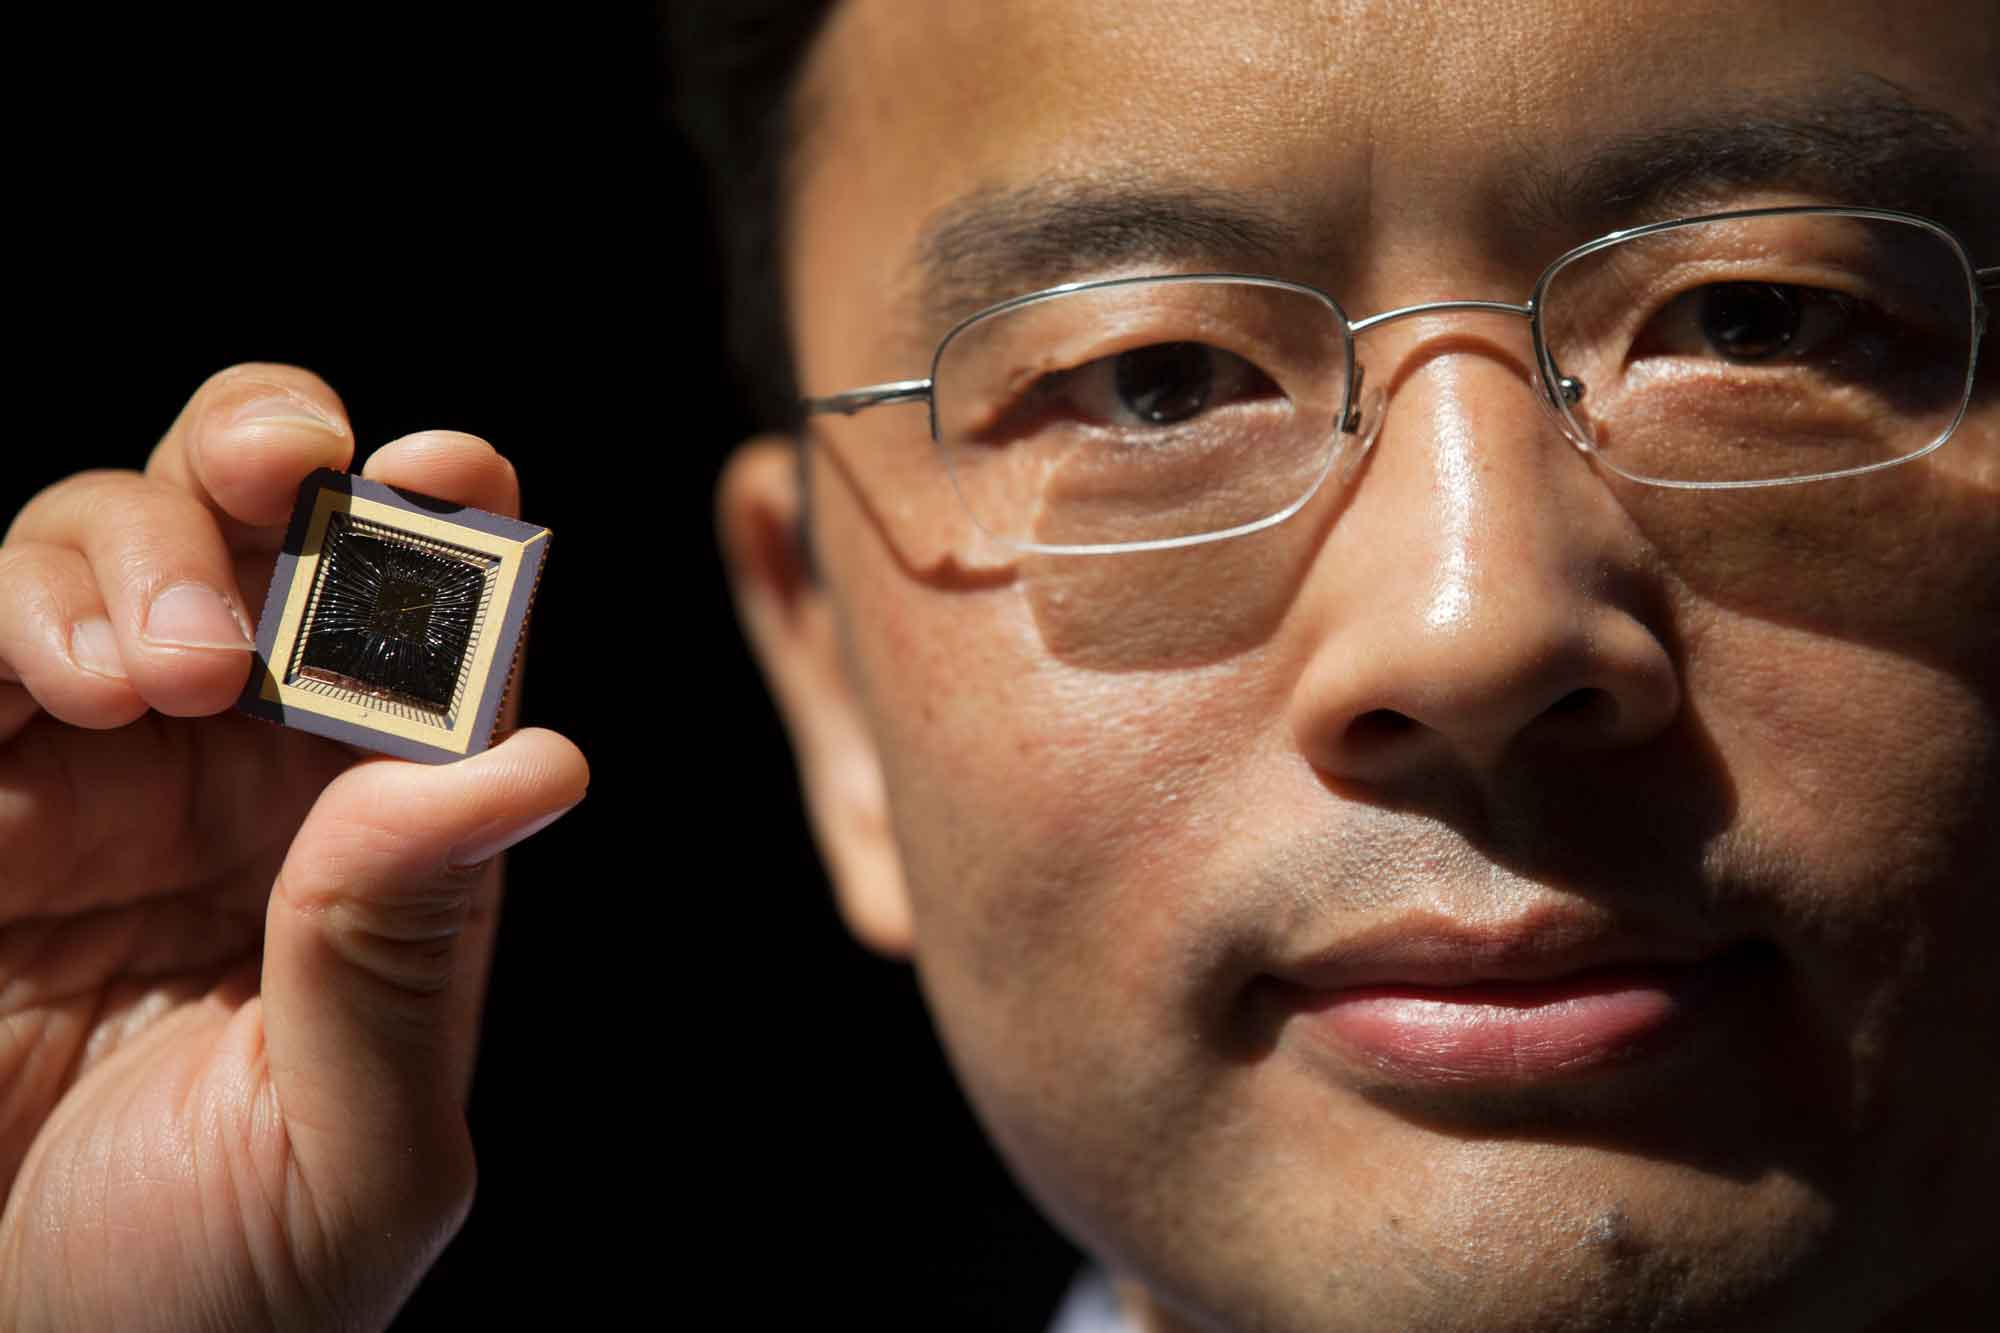 Wei Lu, Professor of Electrical Engineering & Computer Science at the University of Michigan holds a memristor chip he created.